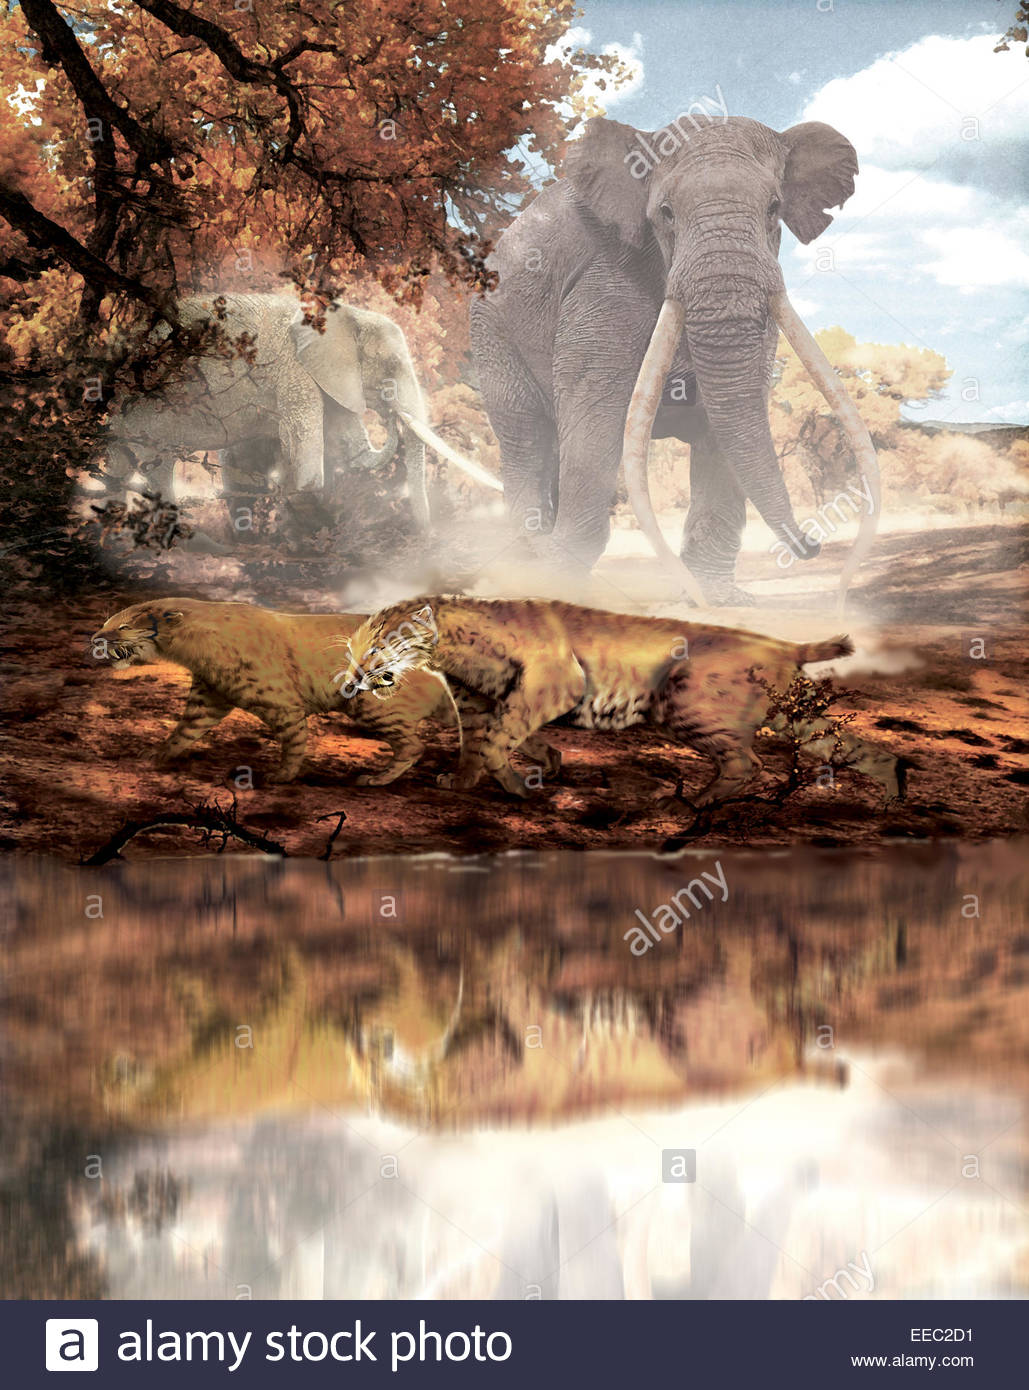 A pair of Homotherium saber-toothed cats walk along the water's edge with two large Anancus mammals in the background. - Stock Image